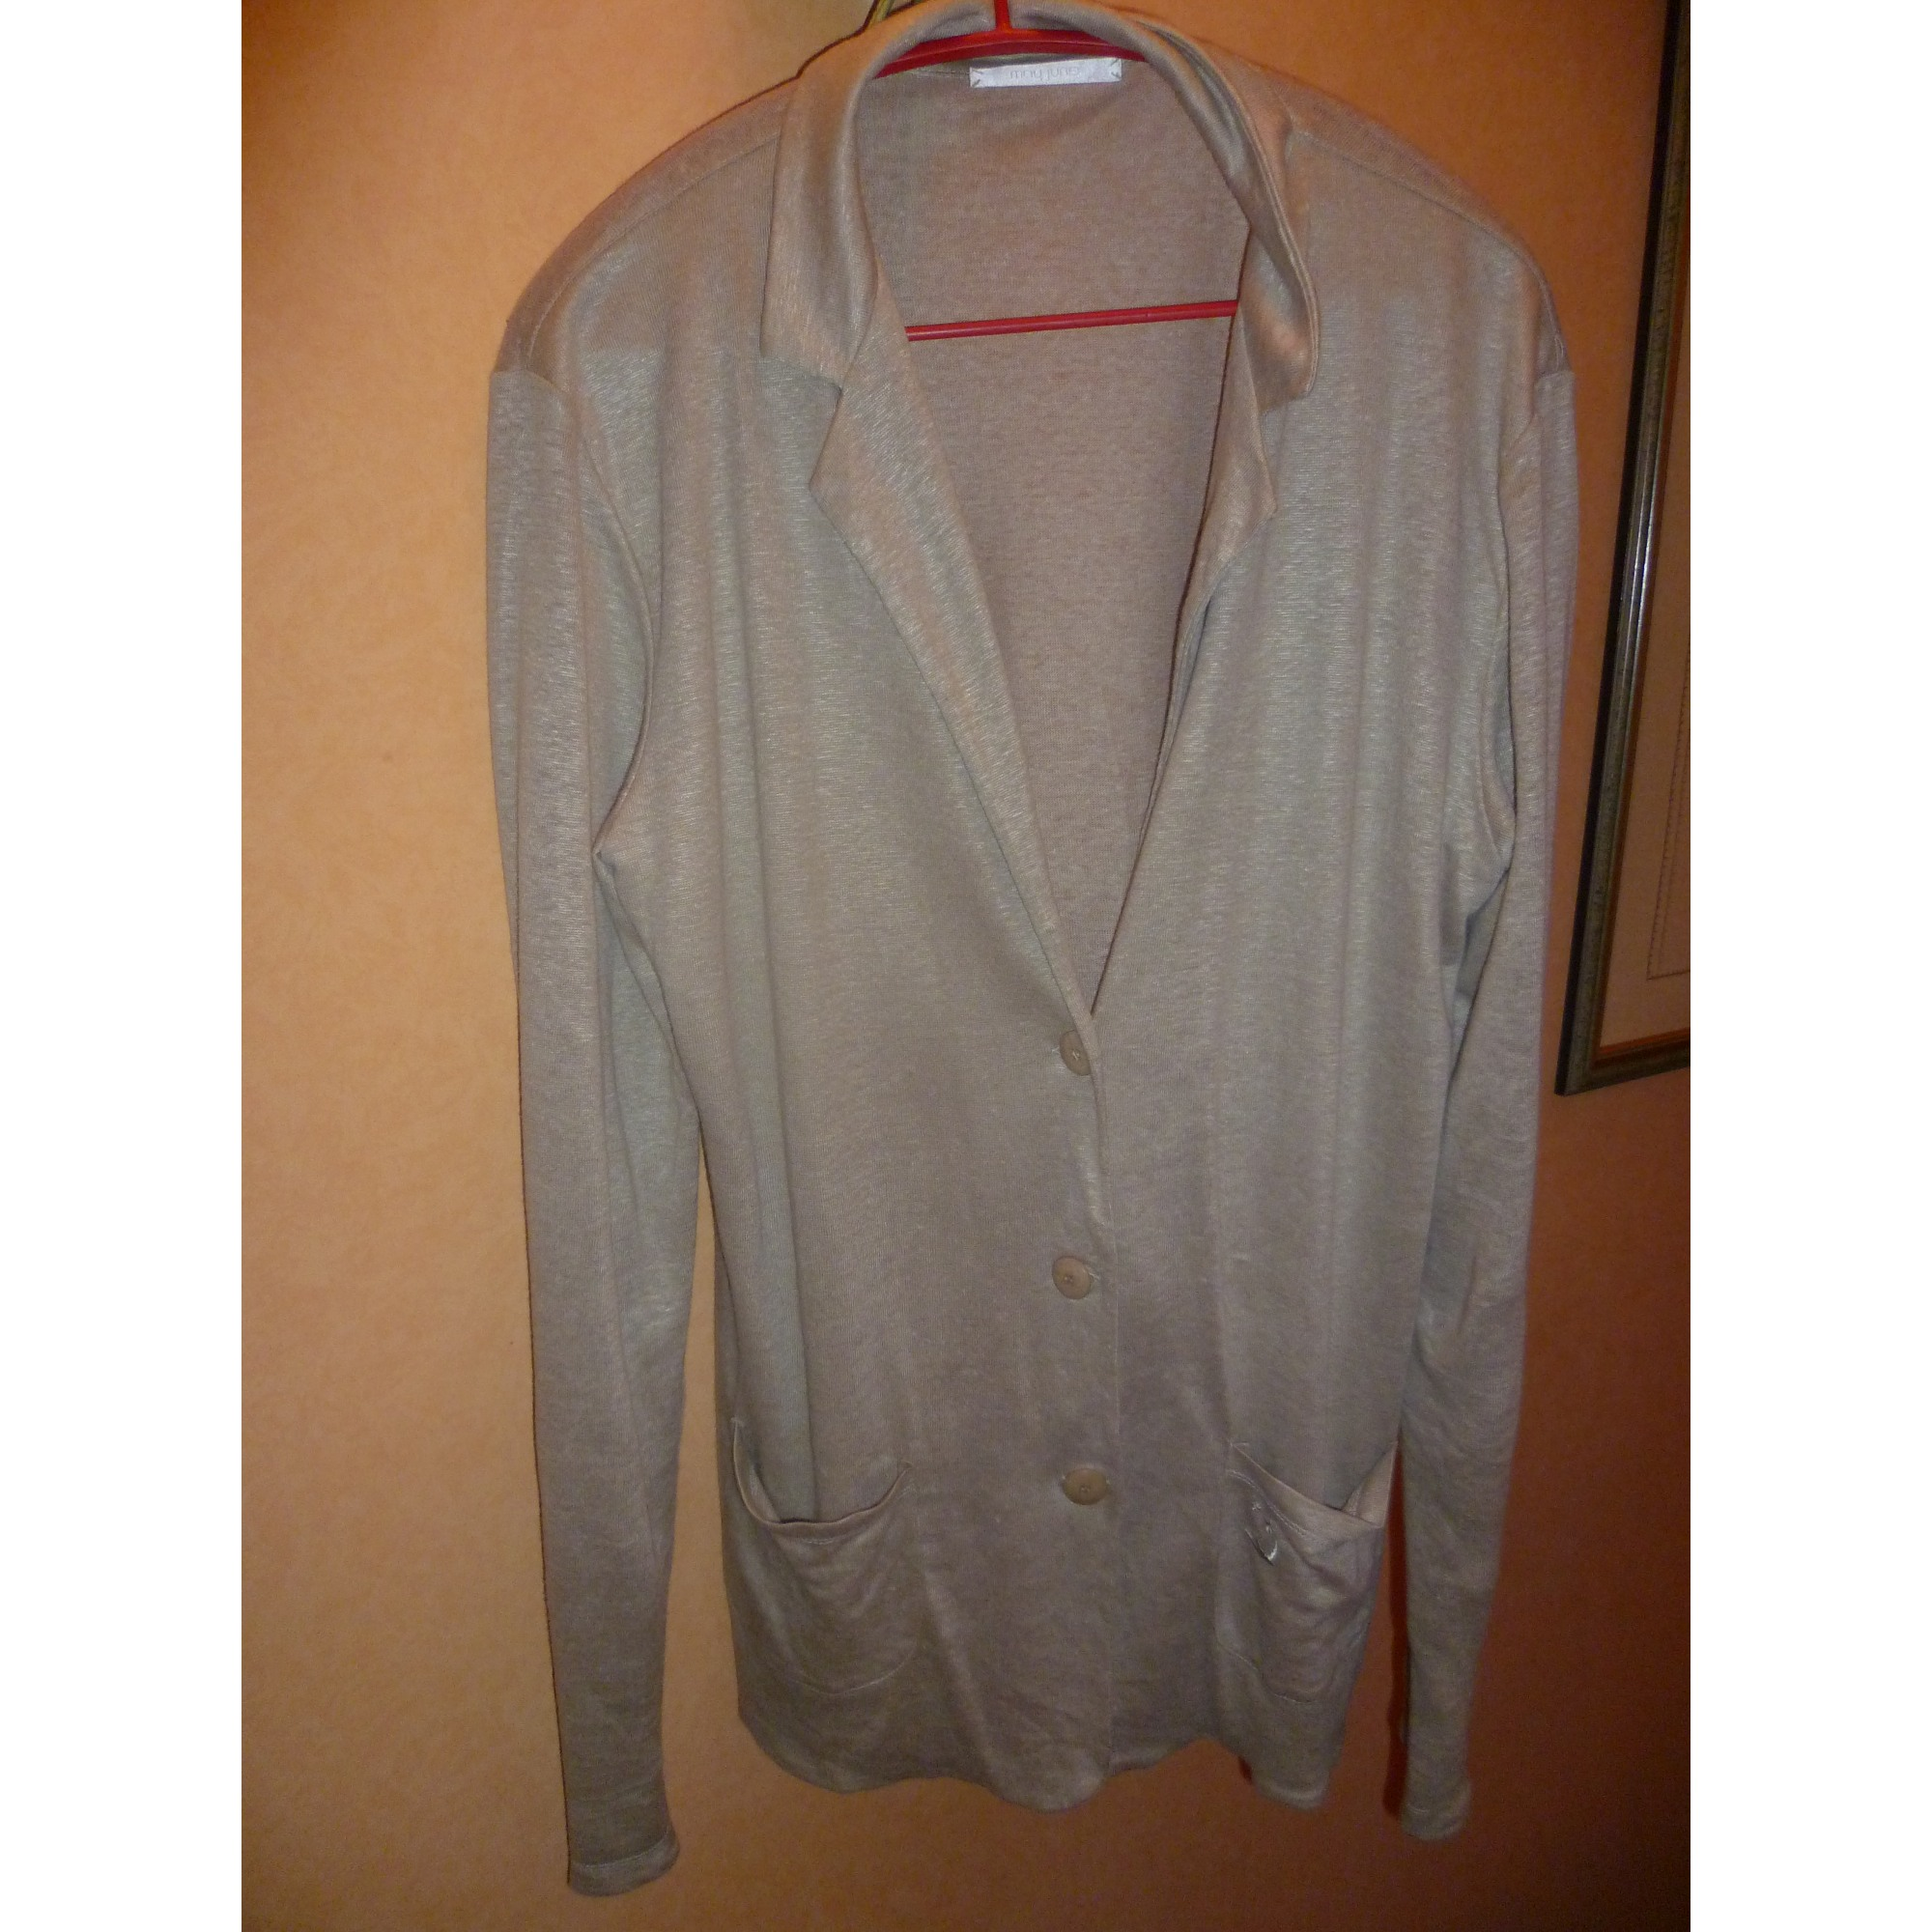 Veste MAY JUNE Gris, anthracite